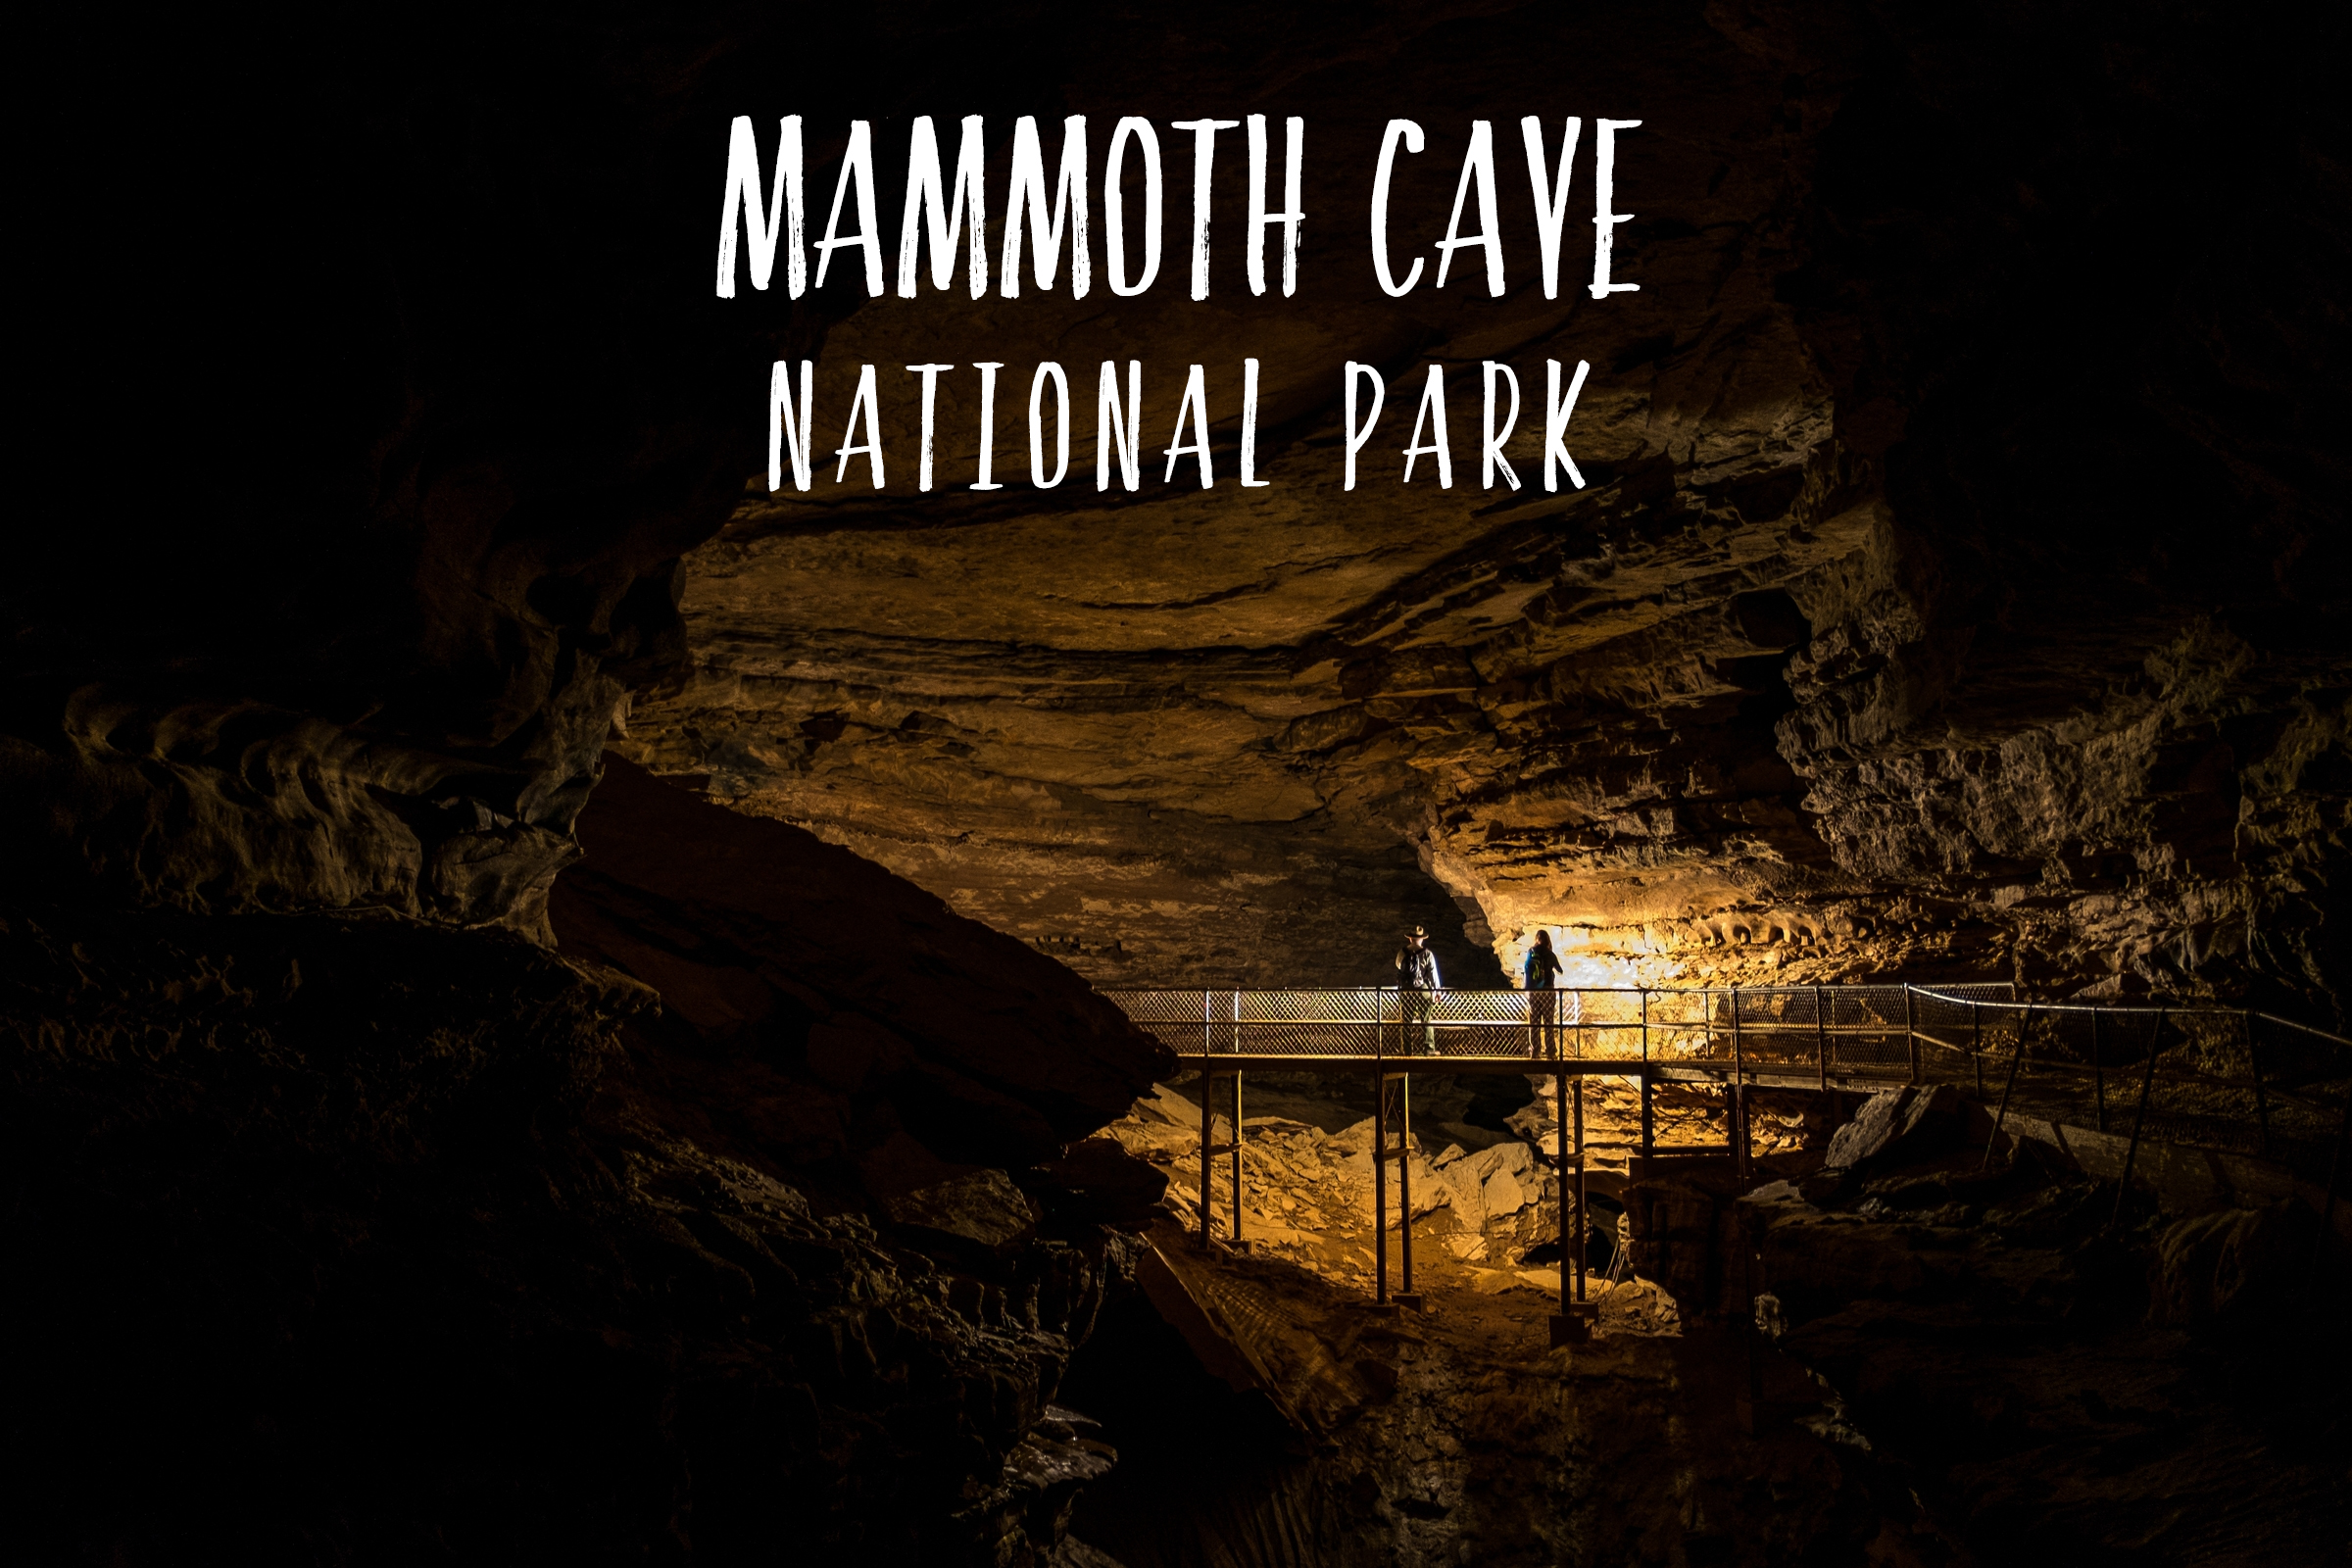 59in52_np-page_mammoth-cave.jpg